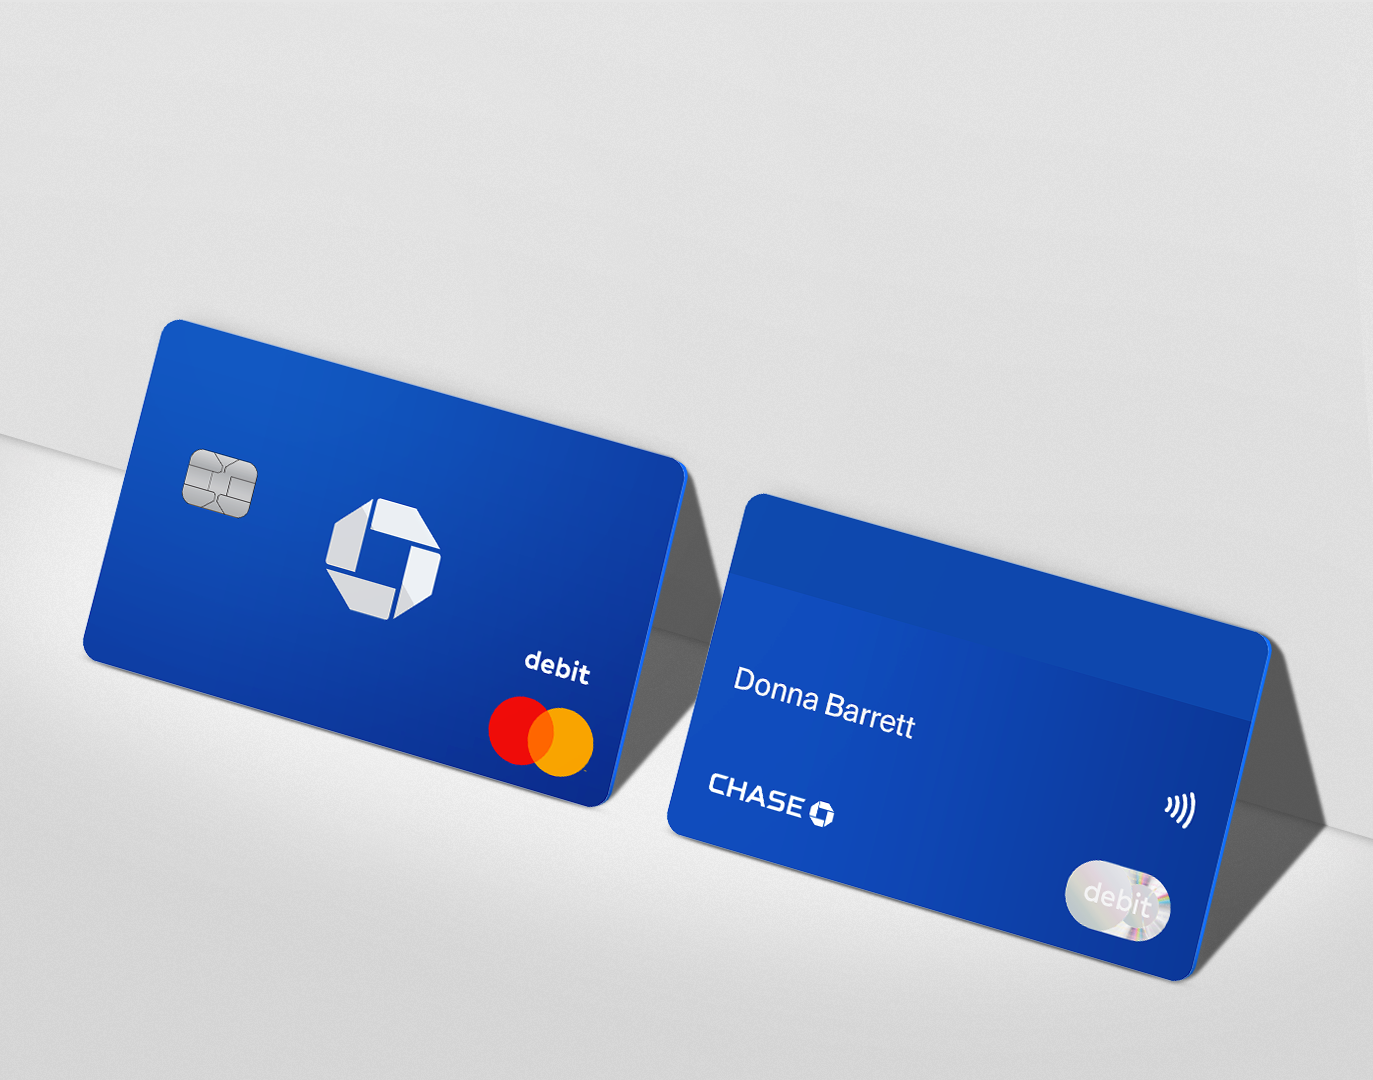 Standard plastic debit card with simplified back